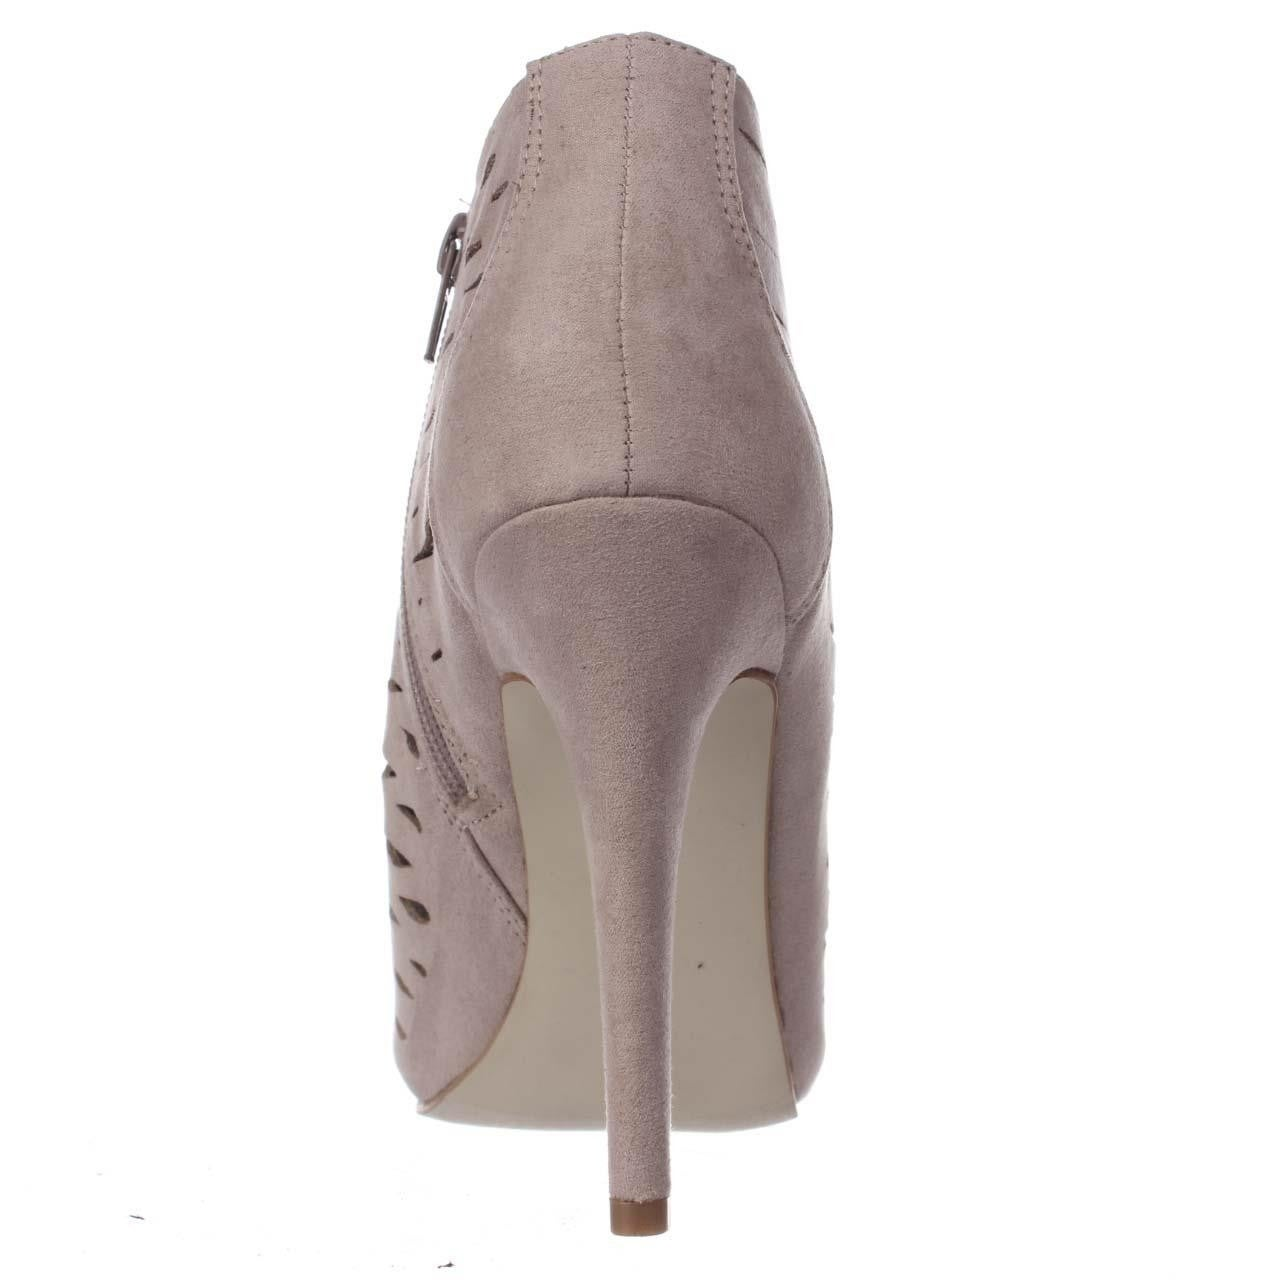 5bcd28e99c Shop Madden Girl Womens ROCKELLA Fabric Peep Toe Classic Pumps - Free  Shipping On Orders Over $45 - Overstock - 16573376